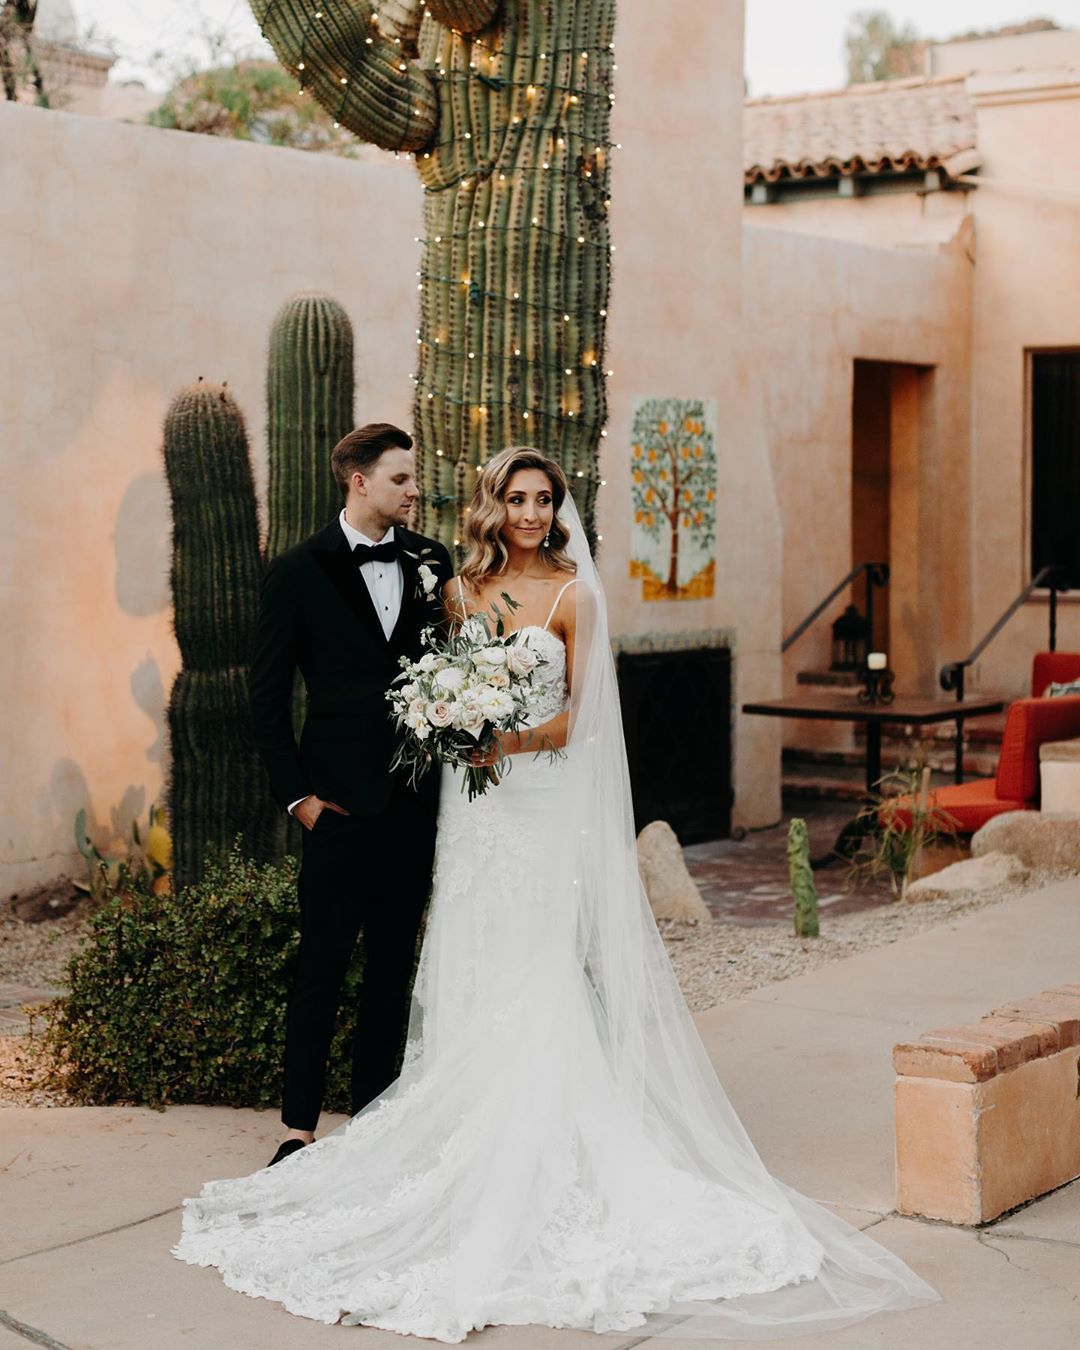 Congratulations, Colette and Casey! You looked so perfect on this magical day!  Venue Royal Palms Resort and Spa . . . . . . . #tabletopsetc #weddings #florals #azflorist #theknotweddings  #bouquet #flowers #lgbtflorist #lgbtfriendly #lgbtsupport #weddingbouquet #weddinginspiration #elegantwedding #romance #weddingflowers #flowers #weddingflorals #bride #floraldesigner #flowerstagram #florallove #flowersofinstagram #floraldesign #blooms #freshflowers #floristry #eventflorals #wedding #florist